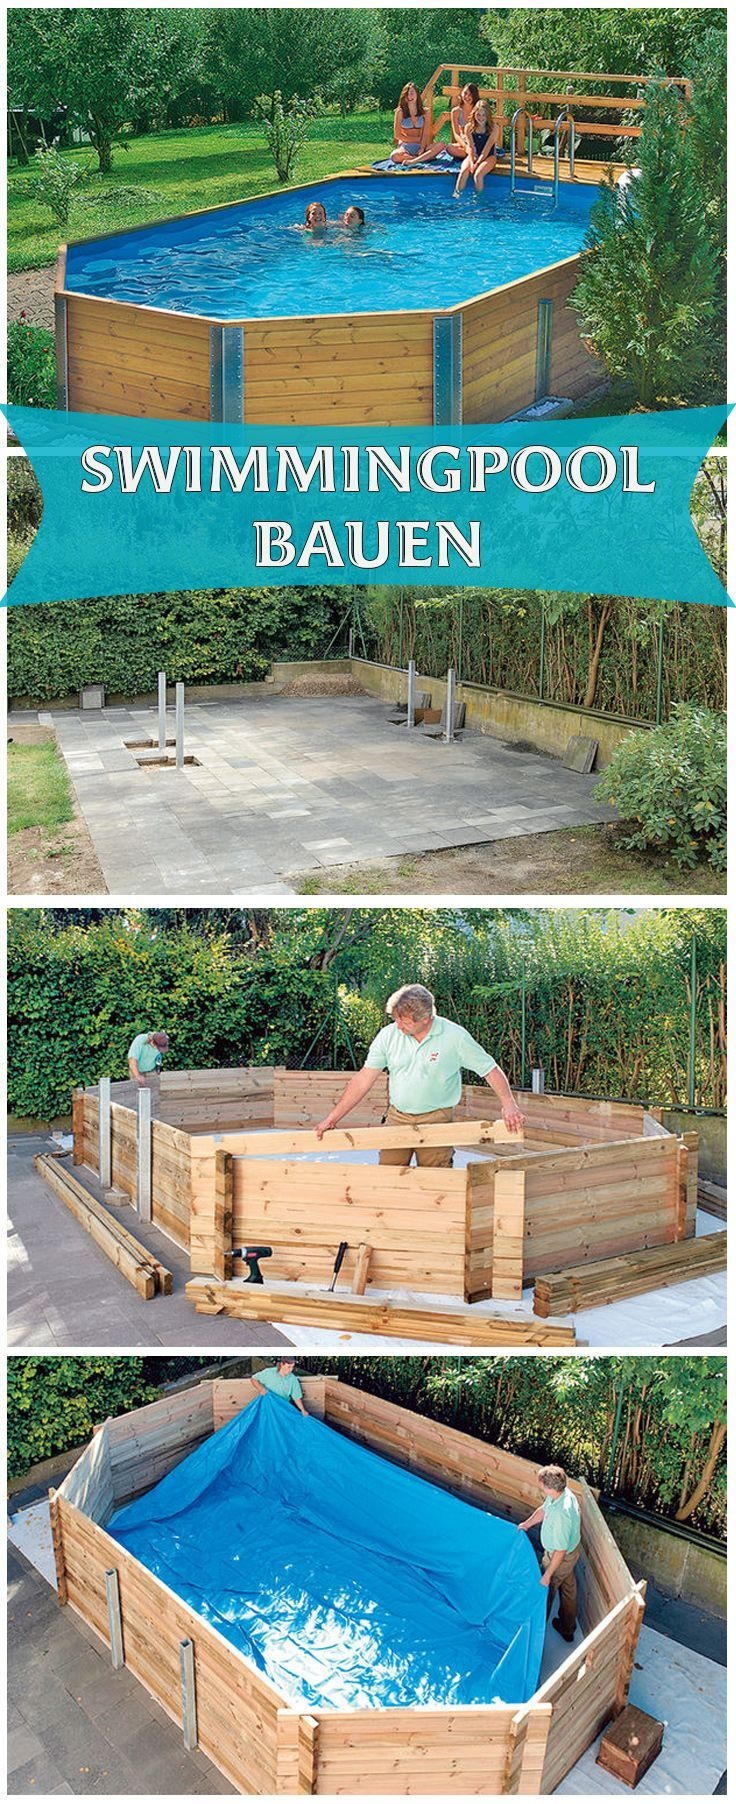 Pool Bauen Oder Nicht Bausatz Pool Pallet Ideas Diy Pool Diy Swimming Pool Pool Designs